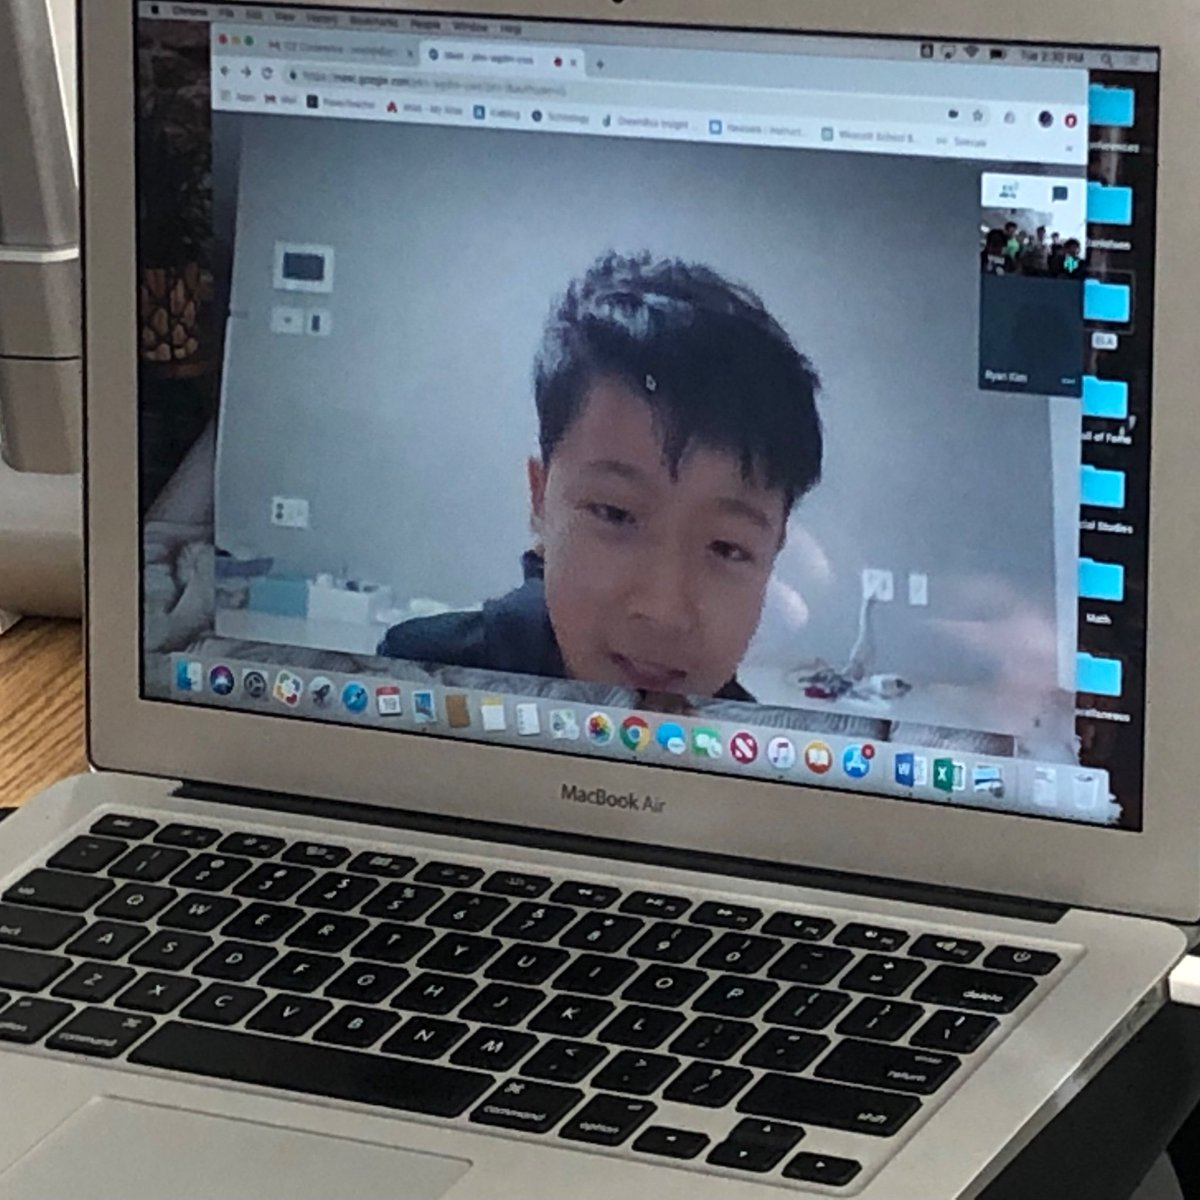 test Twitter Media - Video chatting on @google with Ryan in Korea! #d30learns https://t.co/ygNDqHaZsr